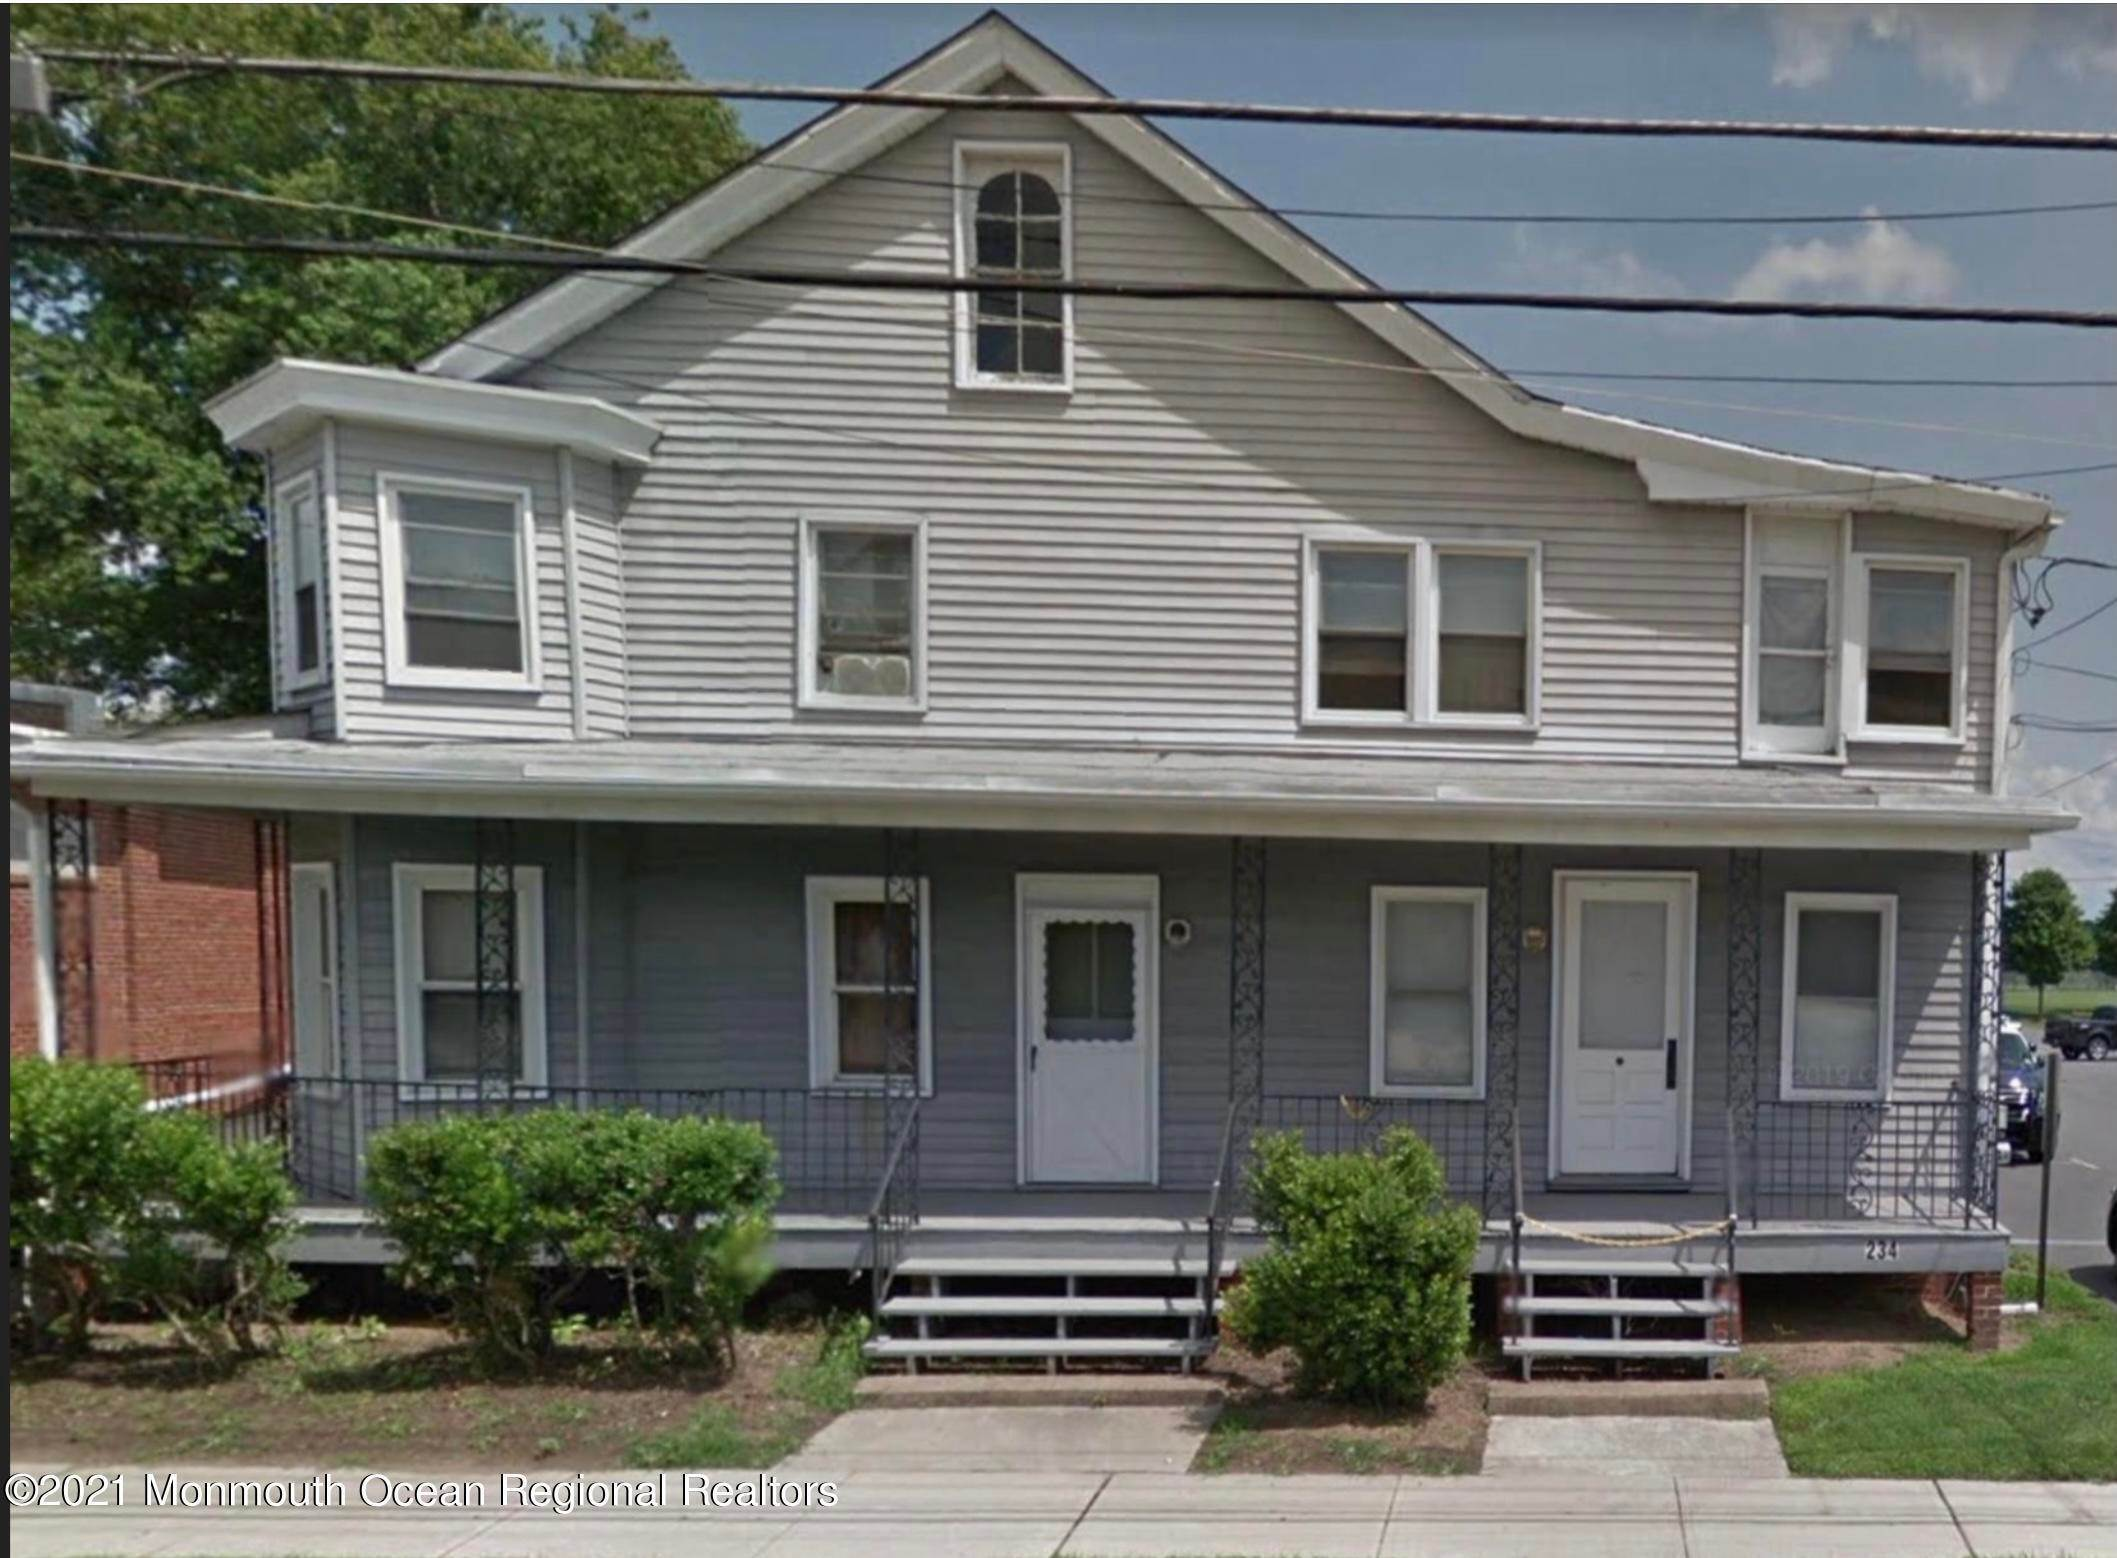 Multi-Family Homes for Sale at 234 Atlantic Avenue Columbus, New Jersey 08022 United States